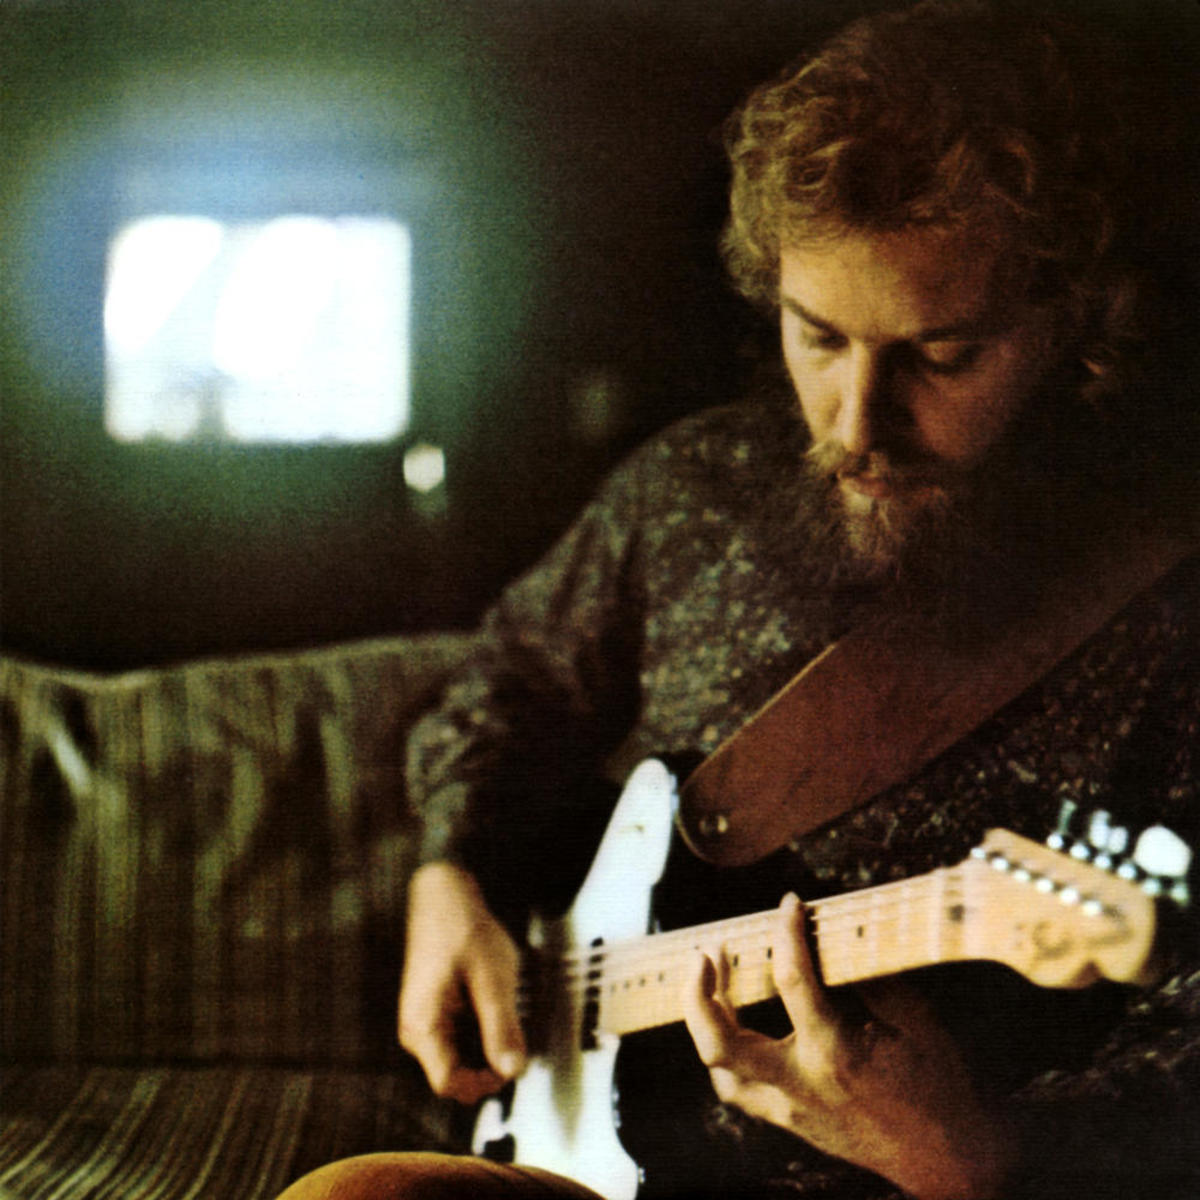 Post-Revival: Tom Fogerty's Solo Years 1971-1975